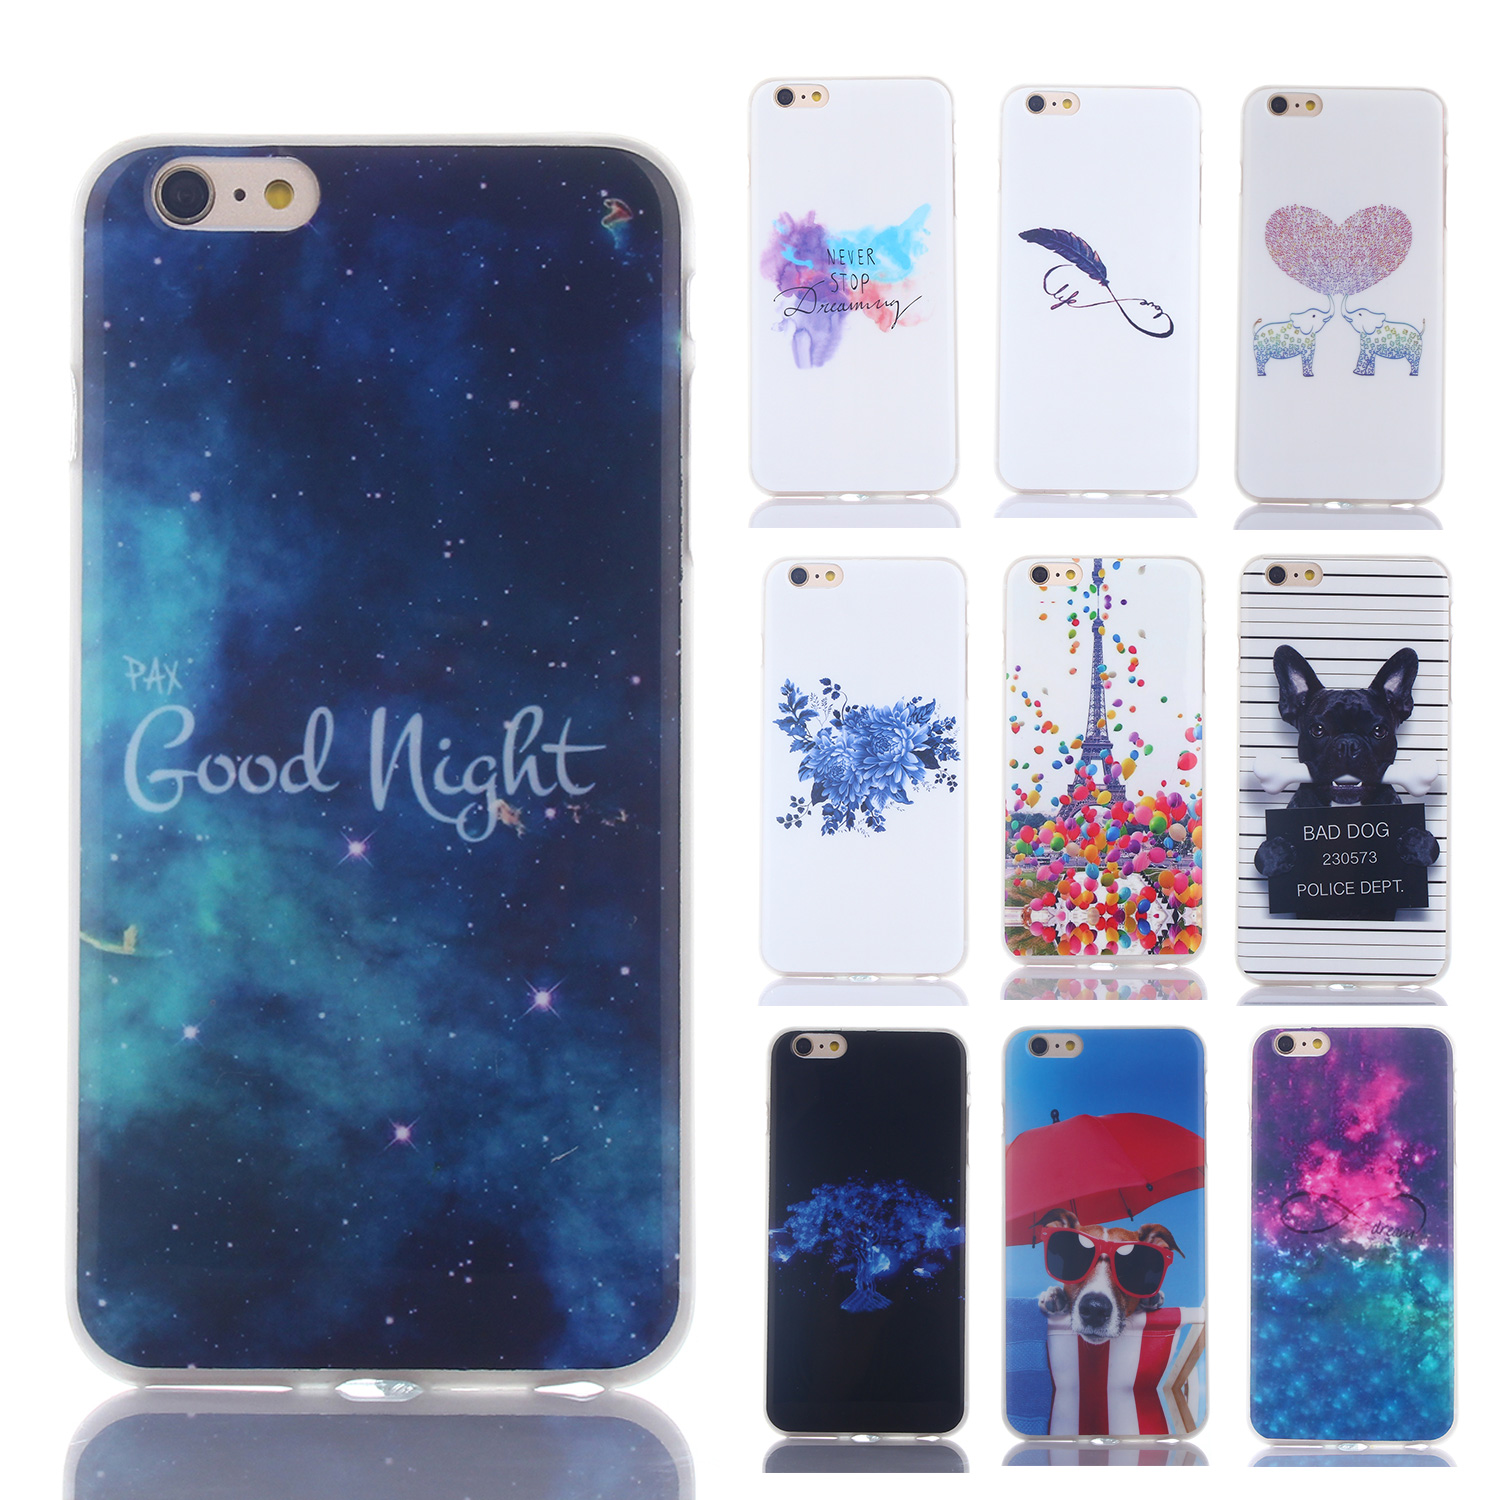 painting phone case coque for samsung galaxy j1 j1ace j2. Black Bedroom Furniture Sets. Home Design Ideas